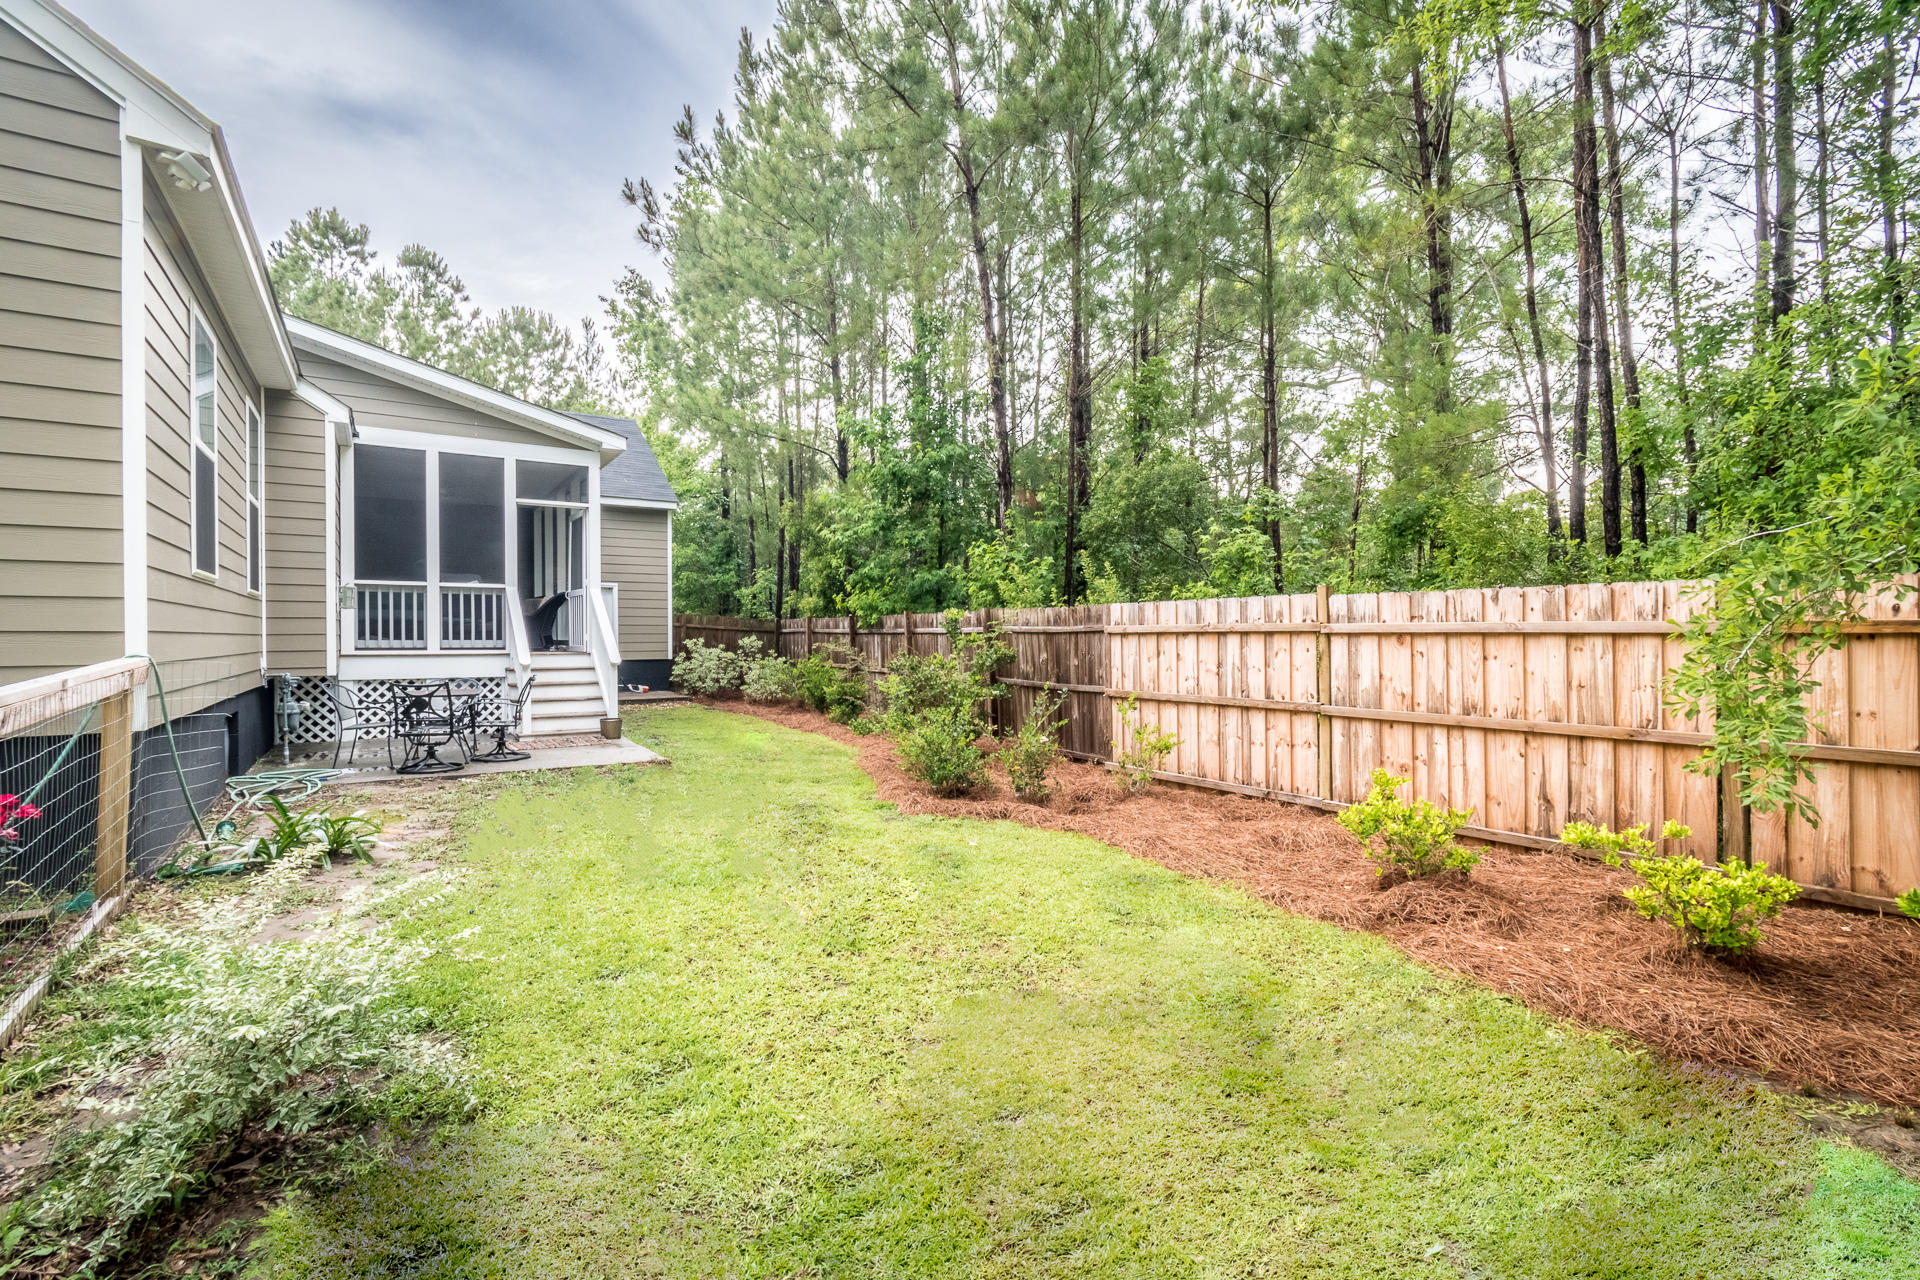 Cainhoy Landing Homes For Sale - 203 Ferry Point, Charleston, SC - 0